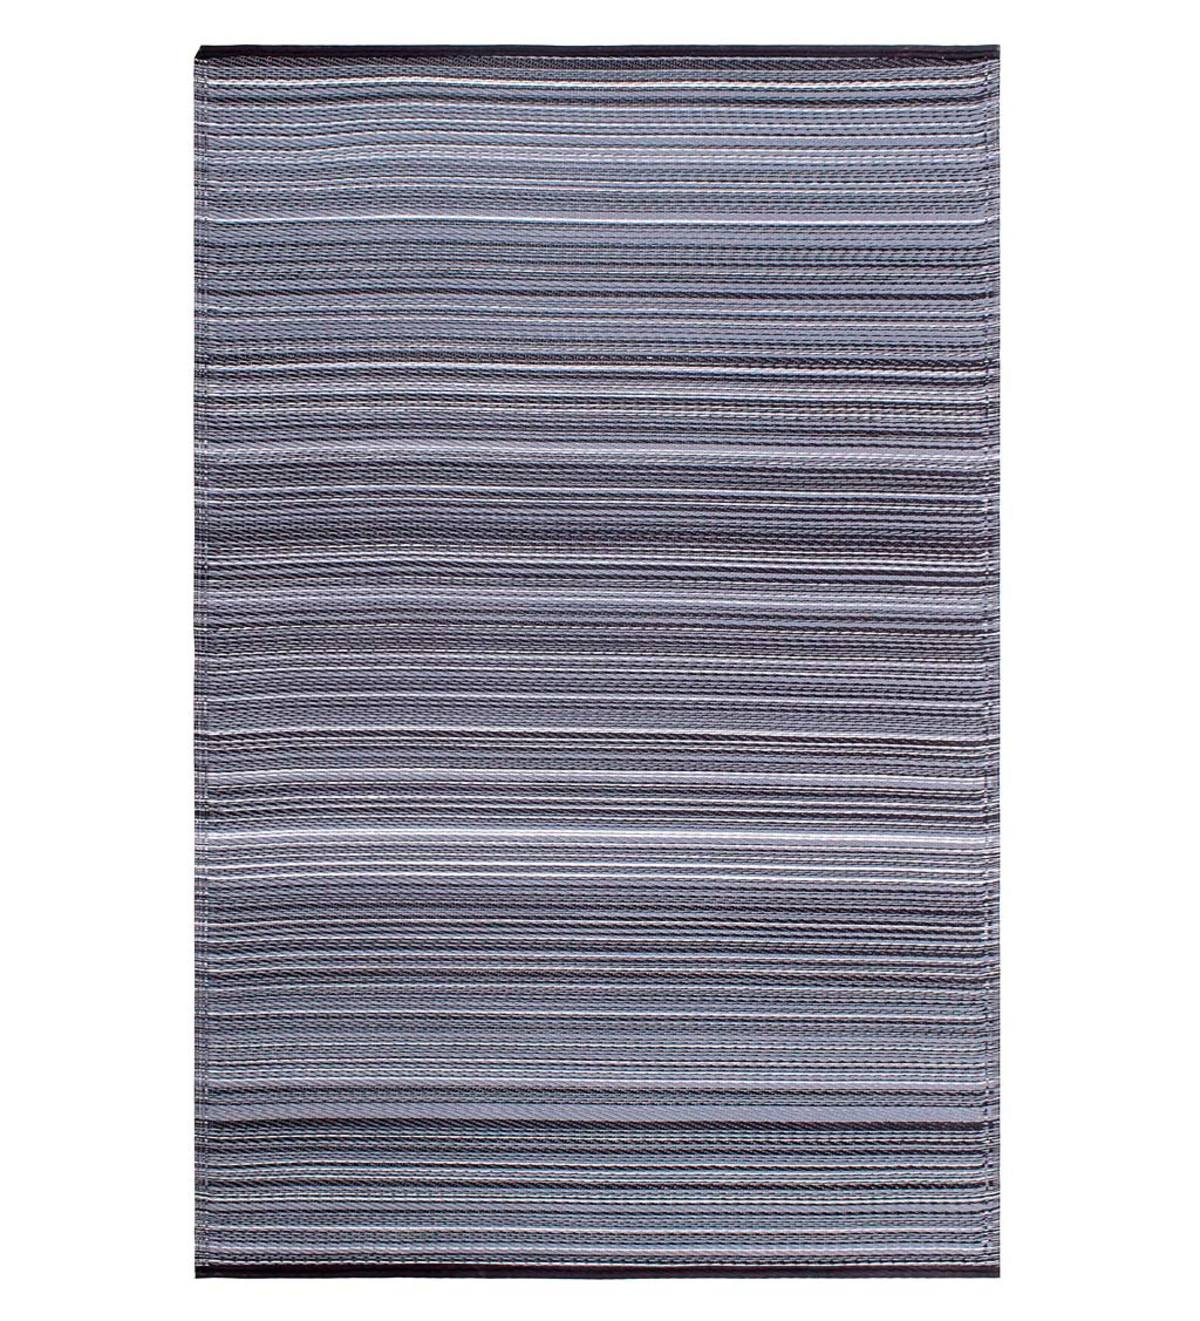 Reversible & Recycled Indoor/Outdoor Rug Cancun Style, 5'x8' - Midnight